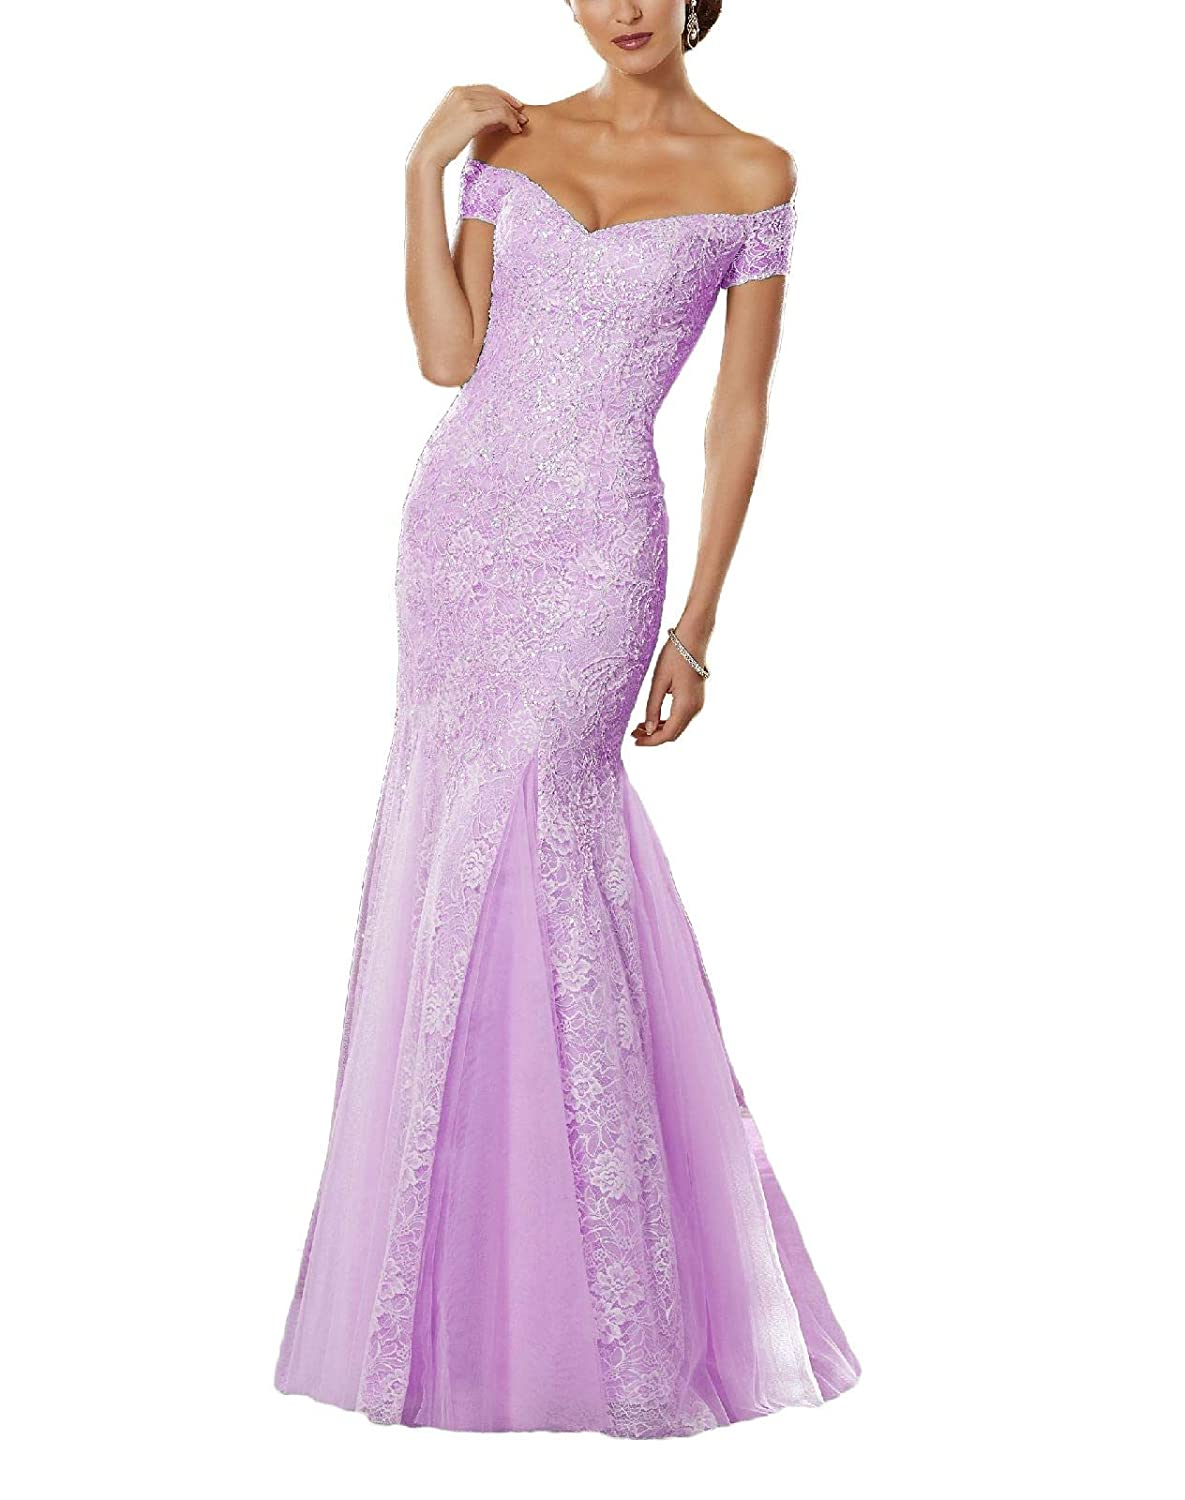 Lightpurple Yisha Bello Women's Off The Shoulder Mermaid Crystal Beaded Prom Dress Long Lace Evening Formal Gowns